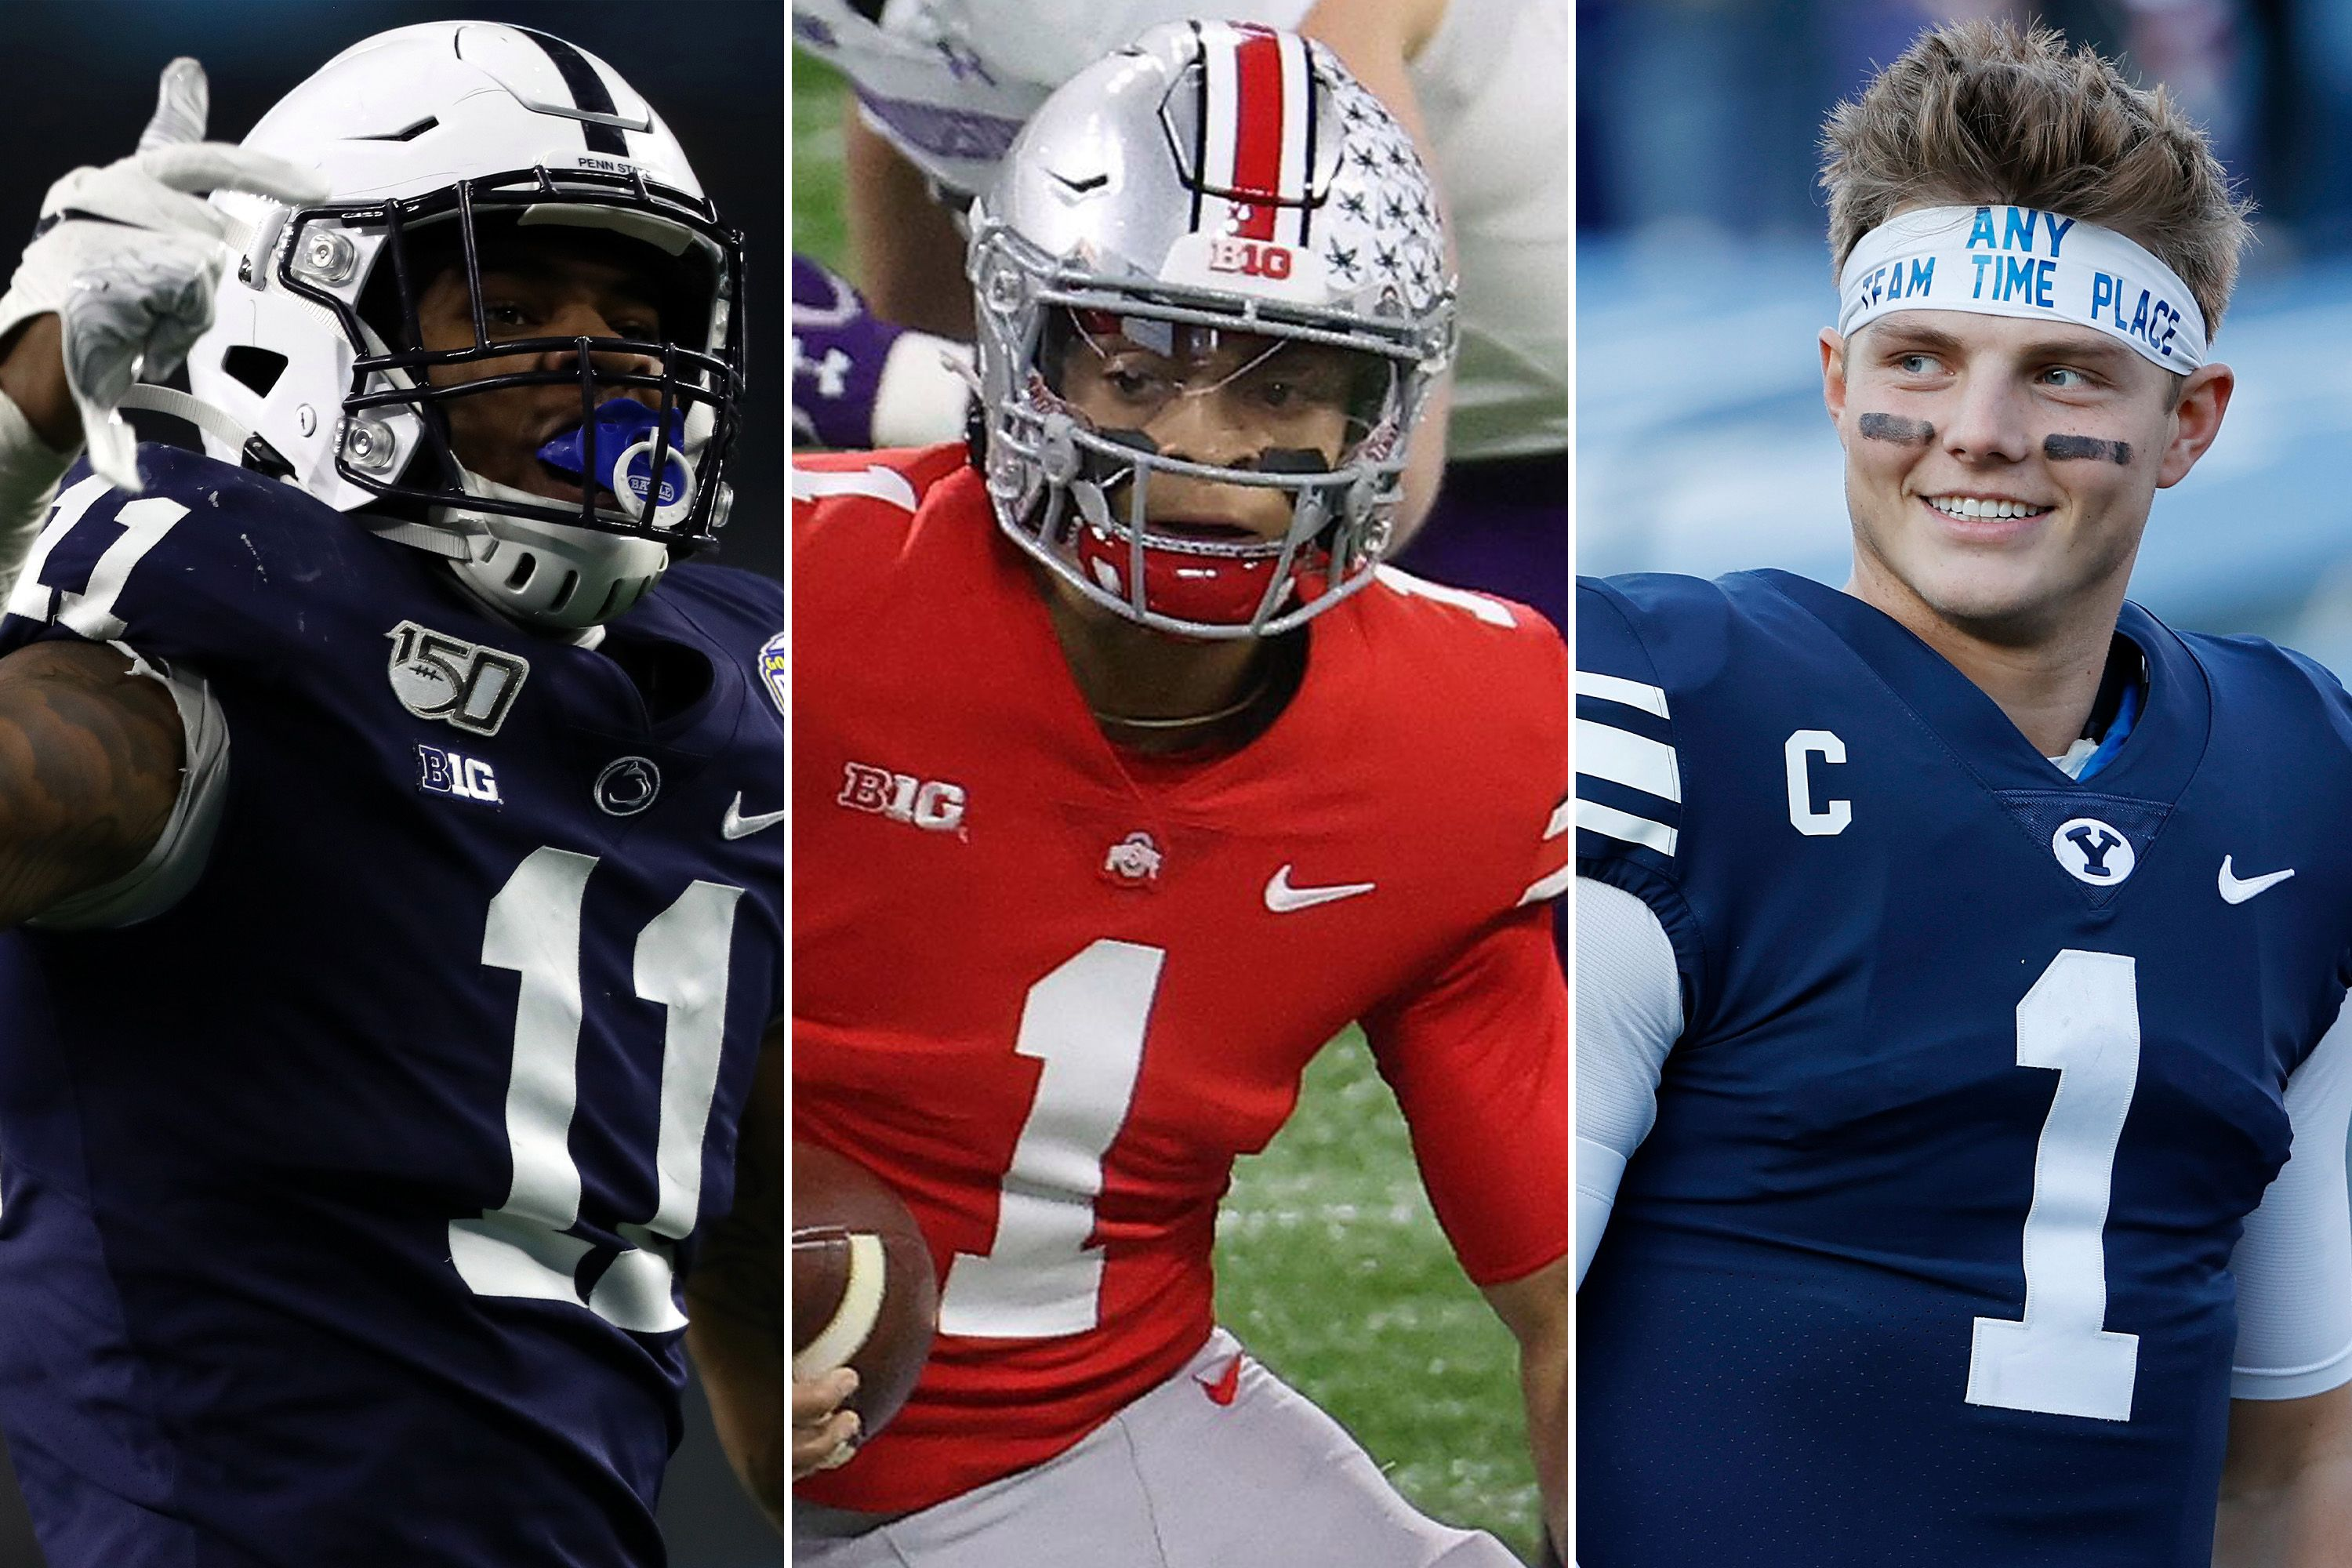 If Todd McShay Is Right About The Eagles 2021 1st Round Draft Pick, I'll Cry